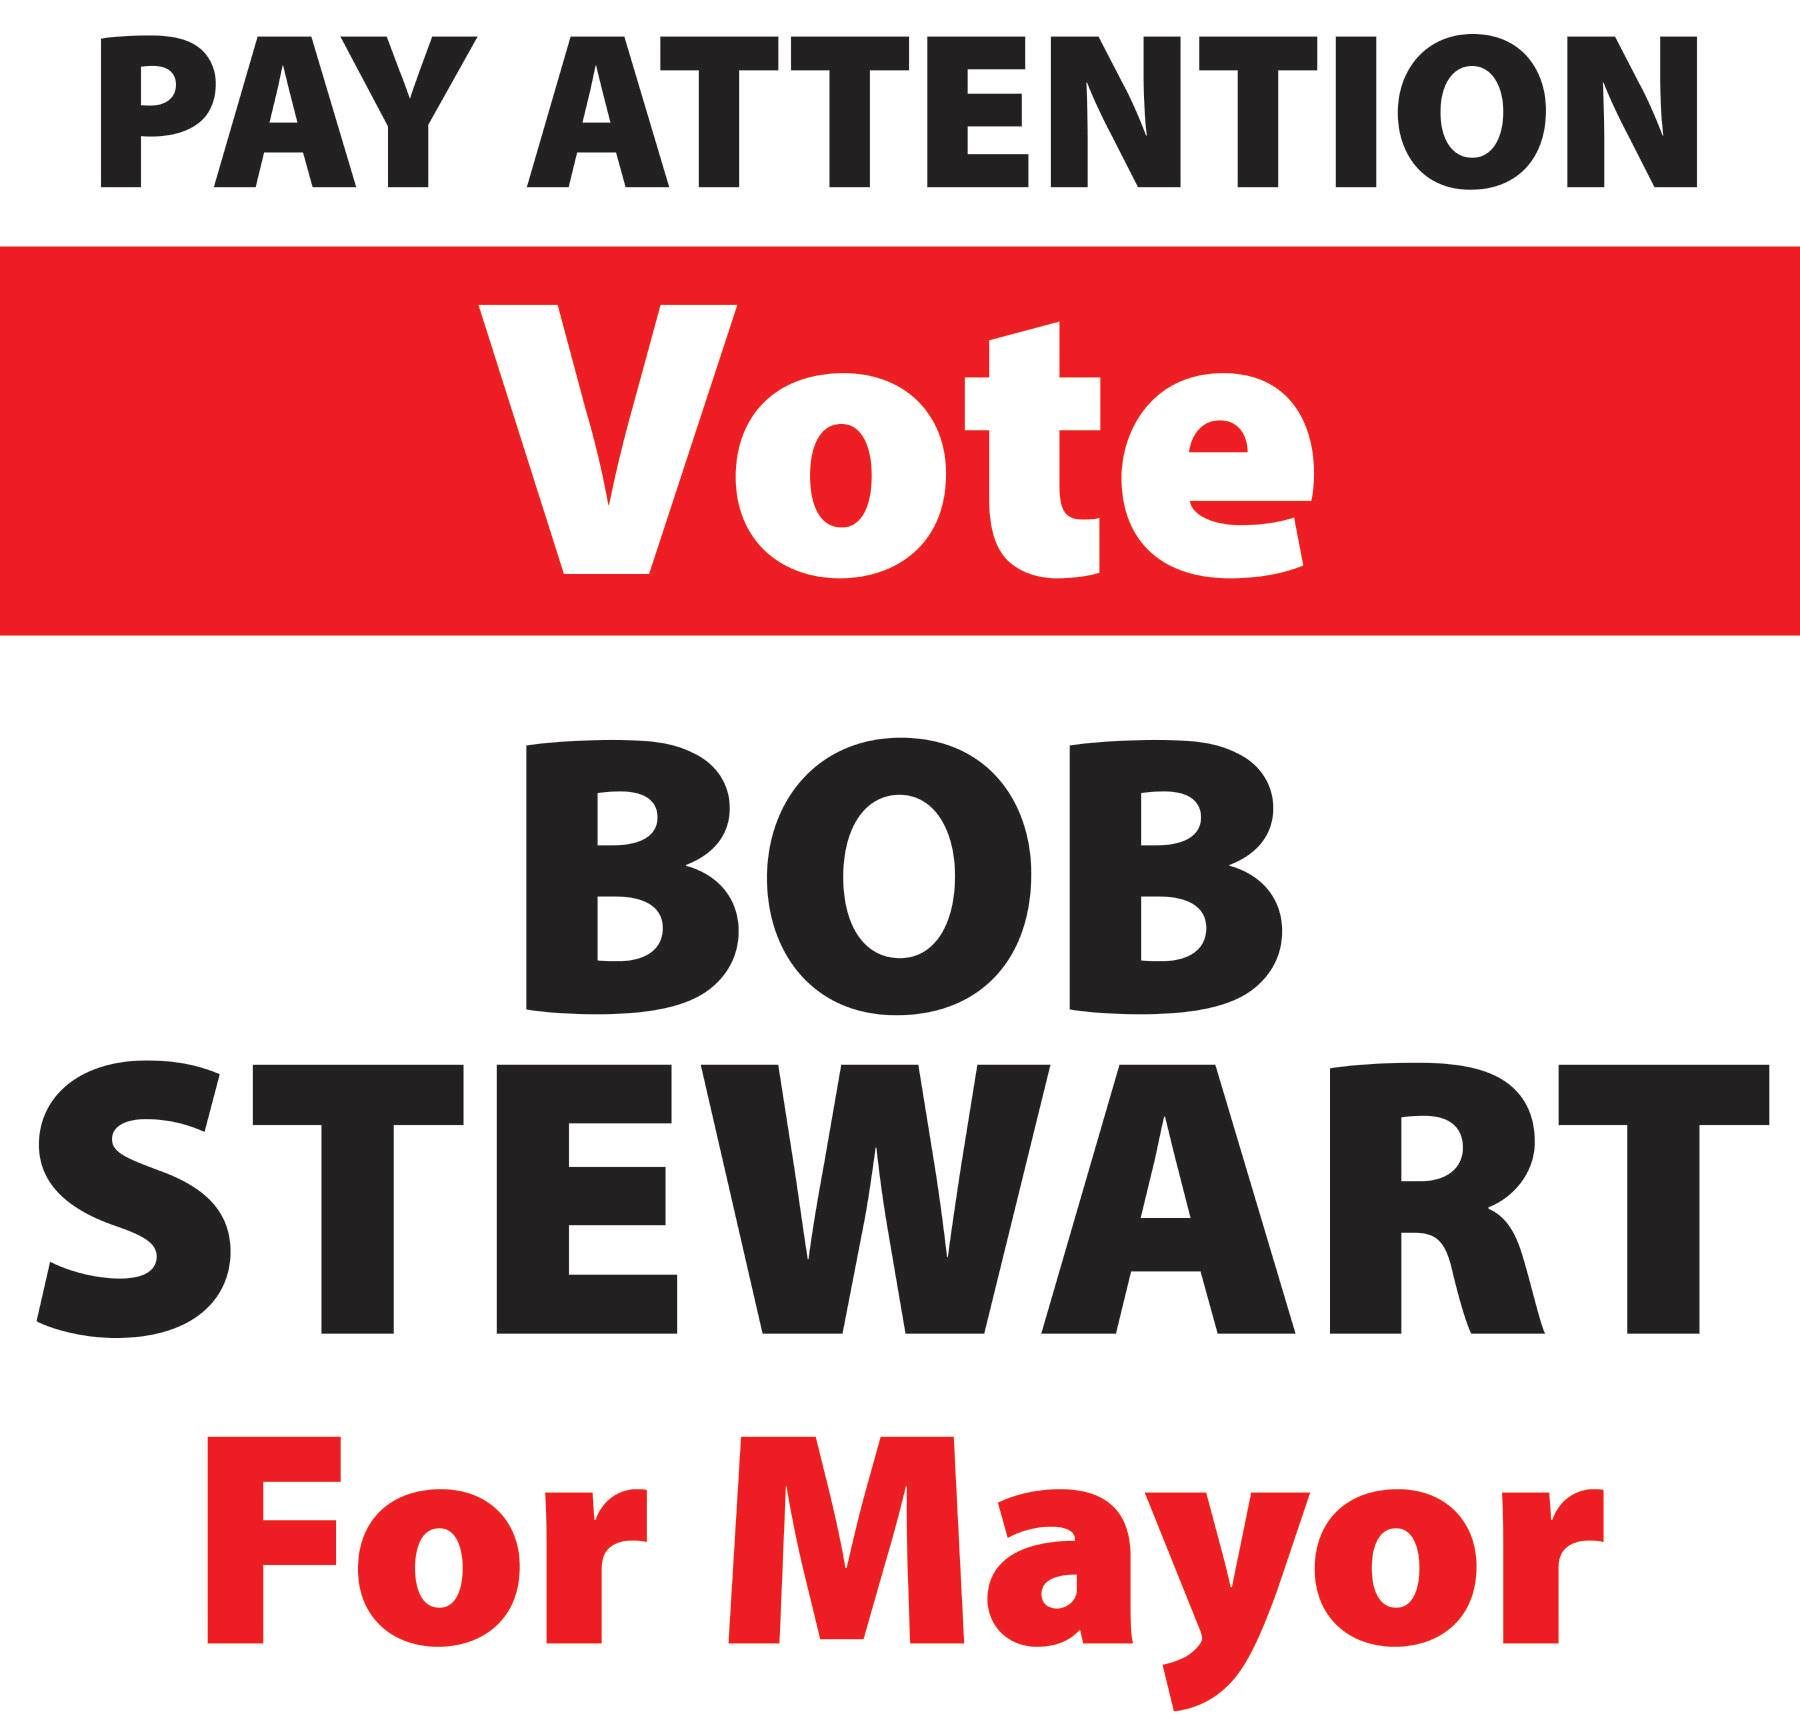 Bob Stewart Mayor Candiate Signage